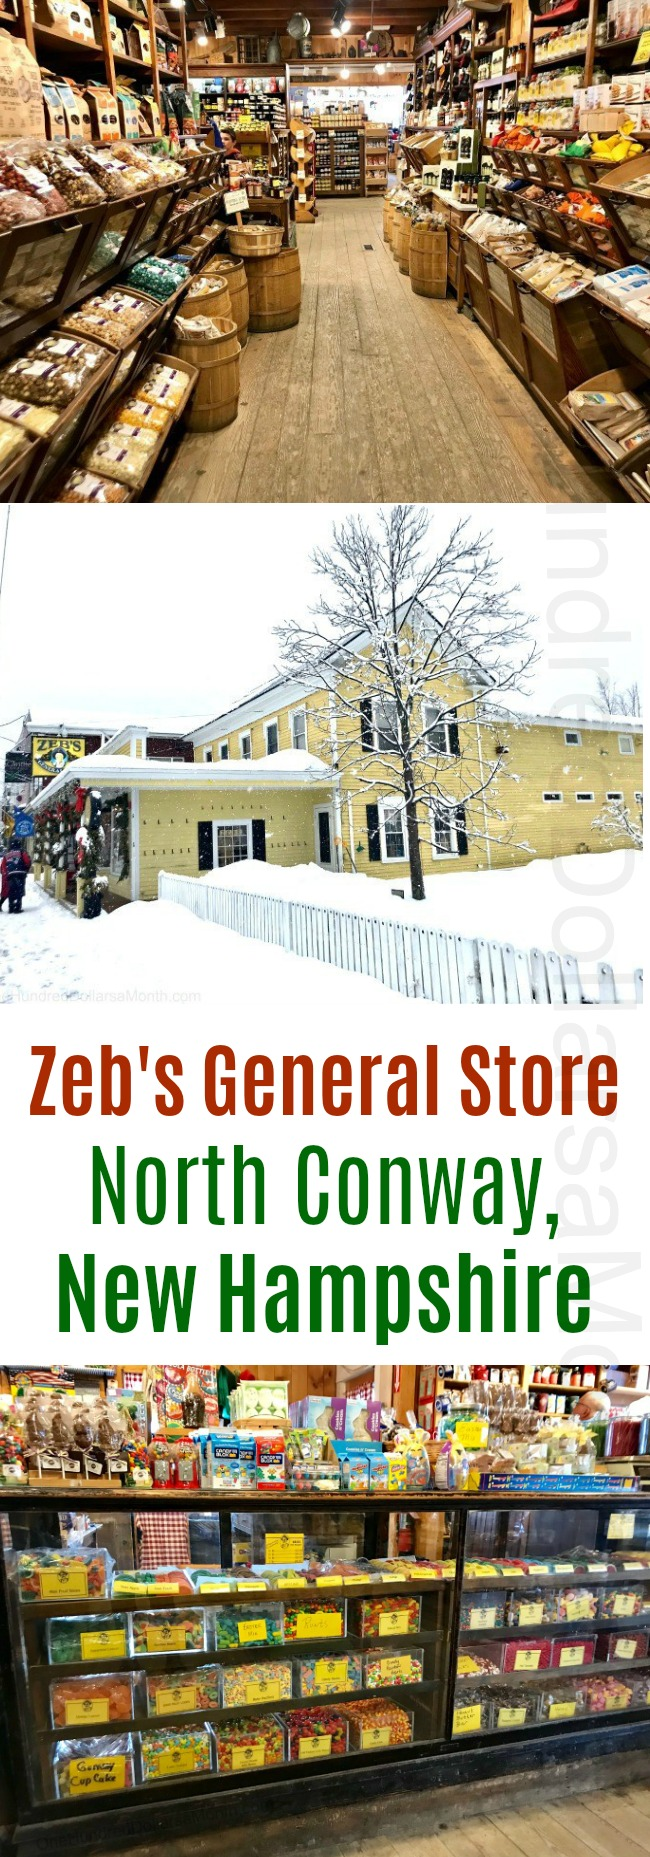 Zeb's General Store – North Conway, New Hampshire